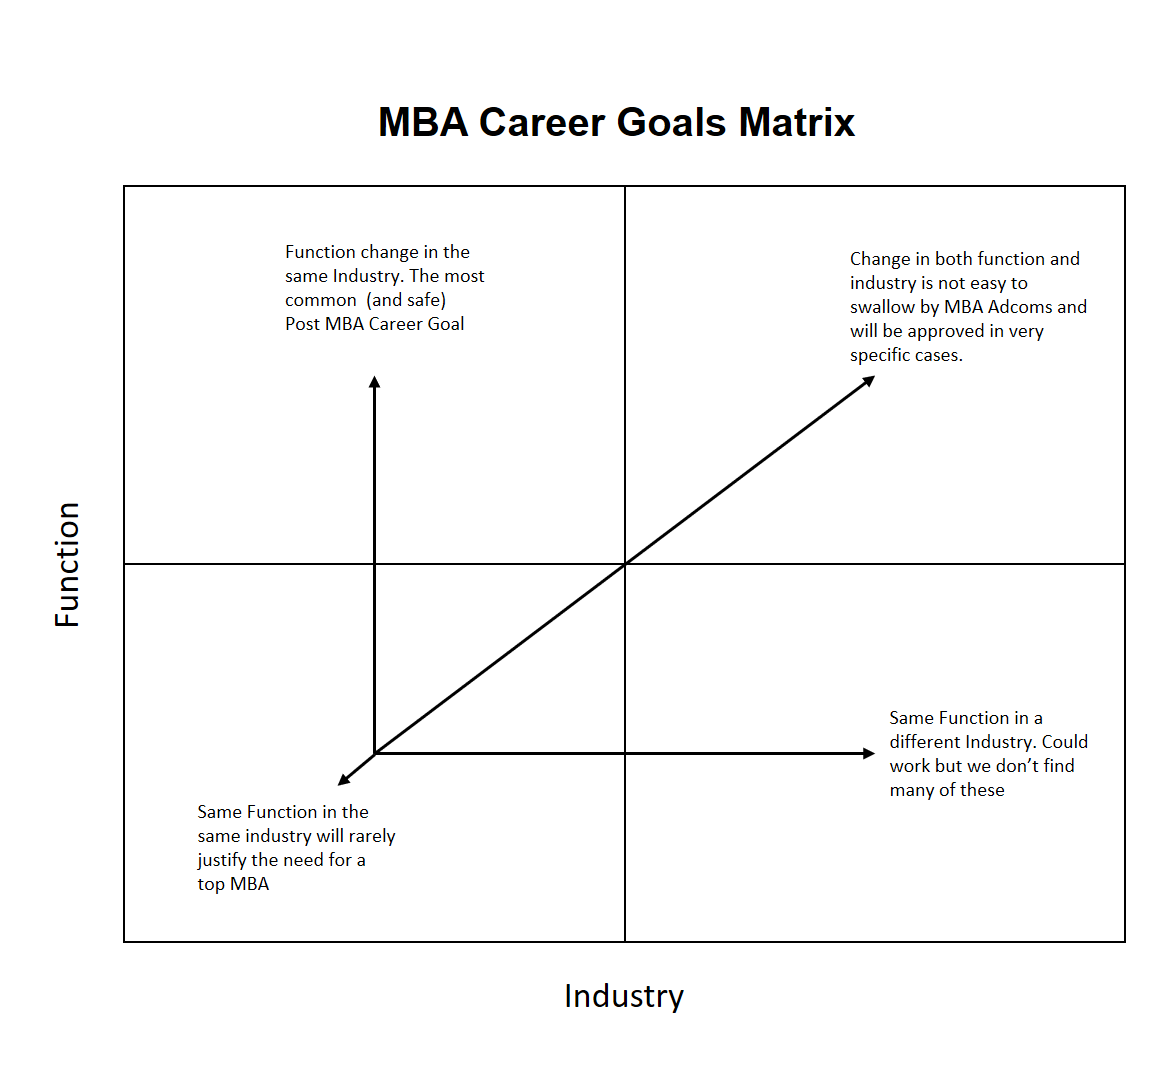 mit sloan mba essays analysis ivy mba consulting career matrix